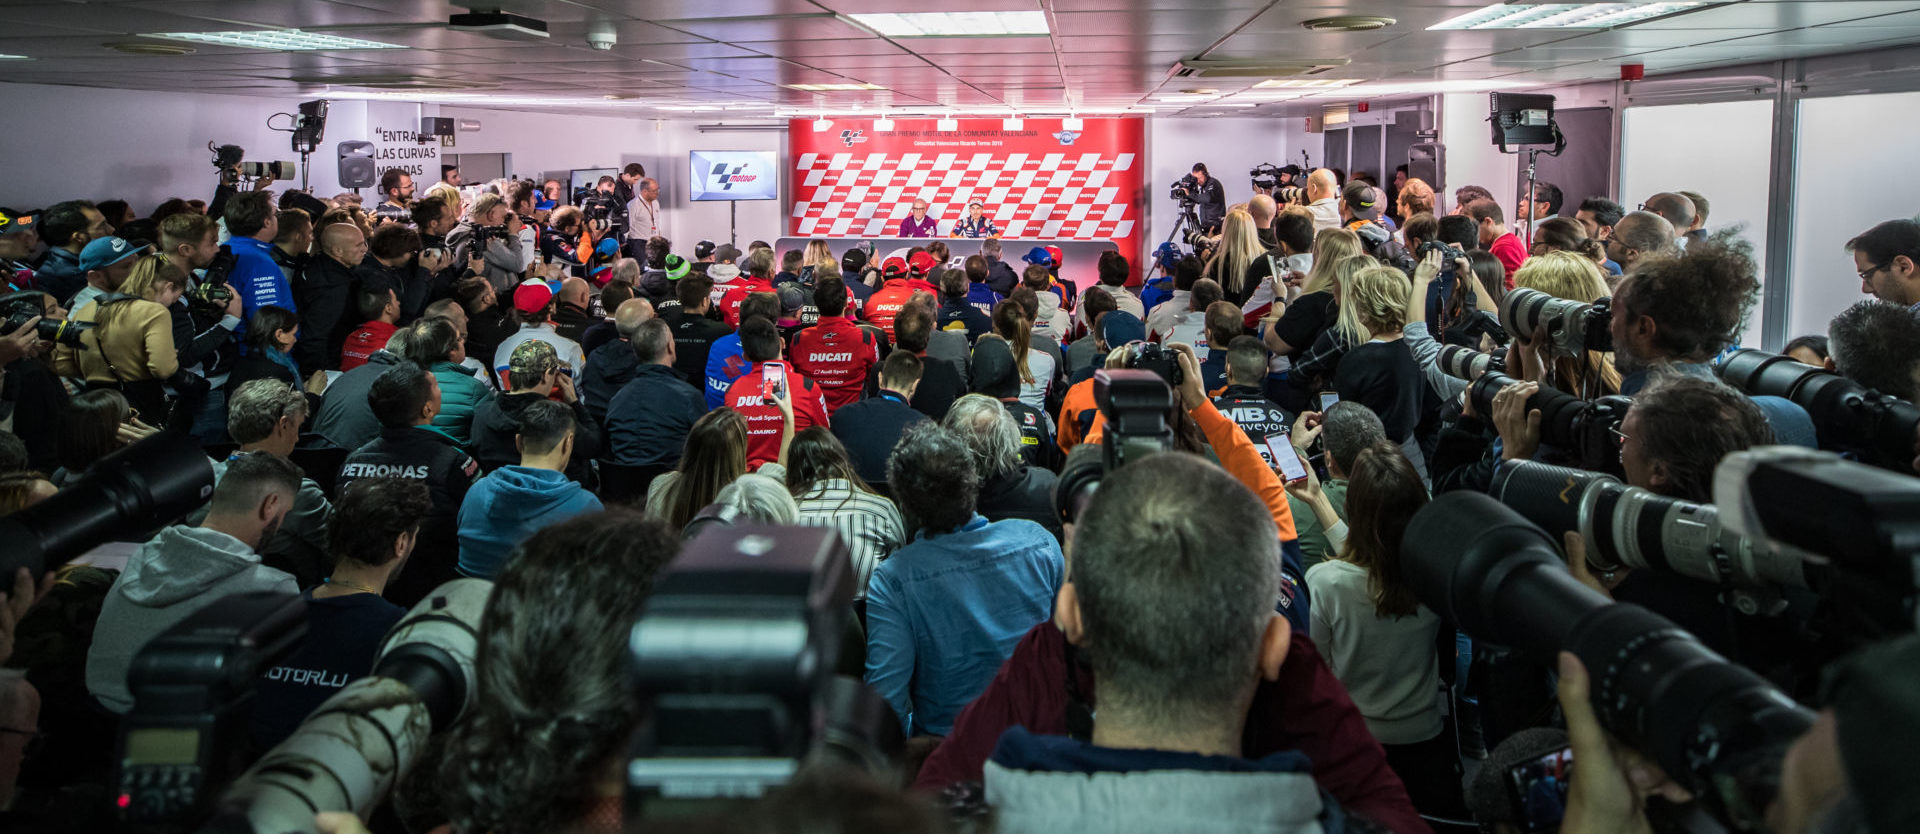 Media may not be allowed to attend MotoGP races when the 2020 season starts later this summer. Photo courtesy of Repsol Honda.